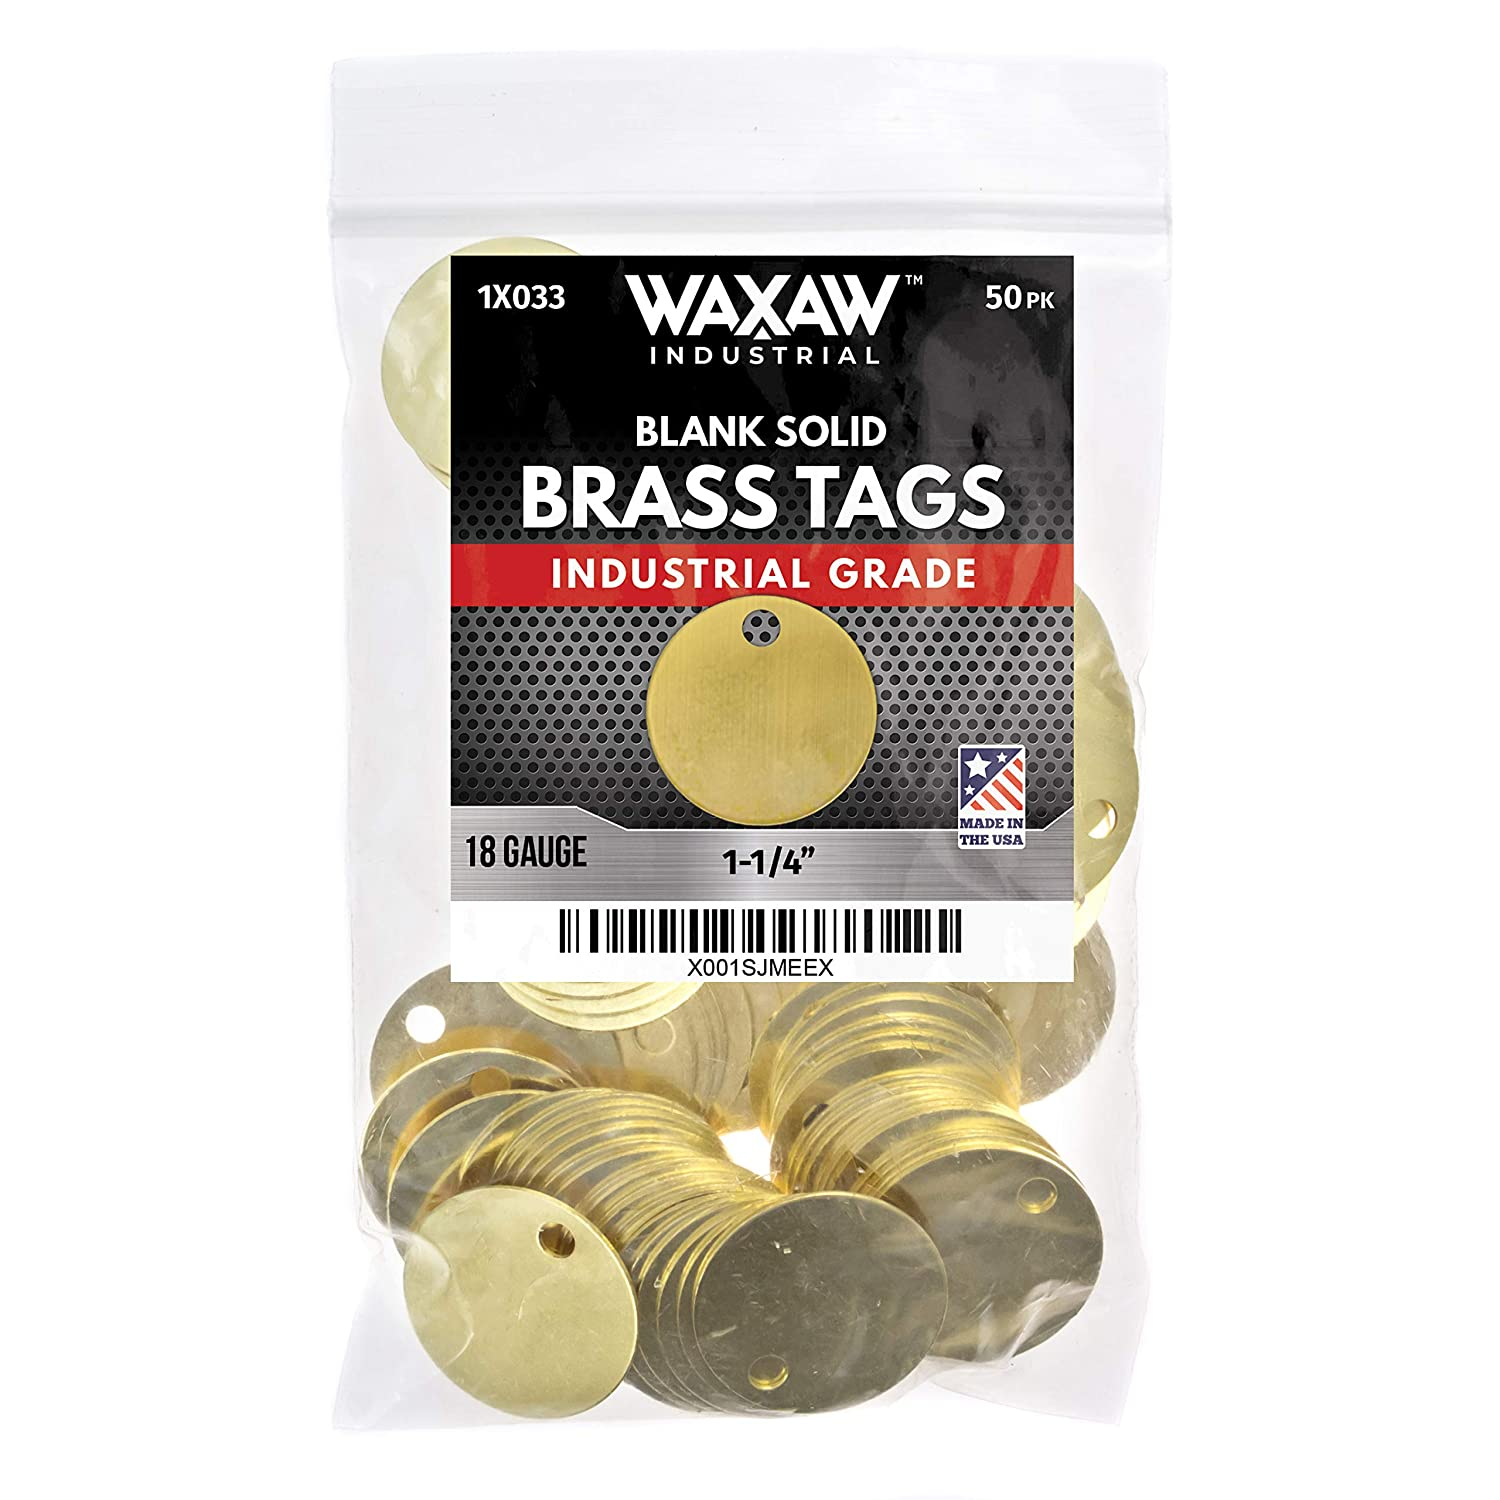 """1.25"""" Solid Brass Stamping Tags (50 Pack) Industrial Grade 0.040"""" Blank Chits for Pipe Valves, Keys, Tool and Equipment Labeling 